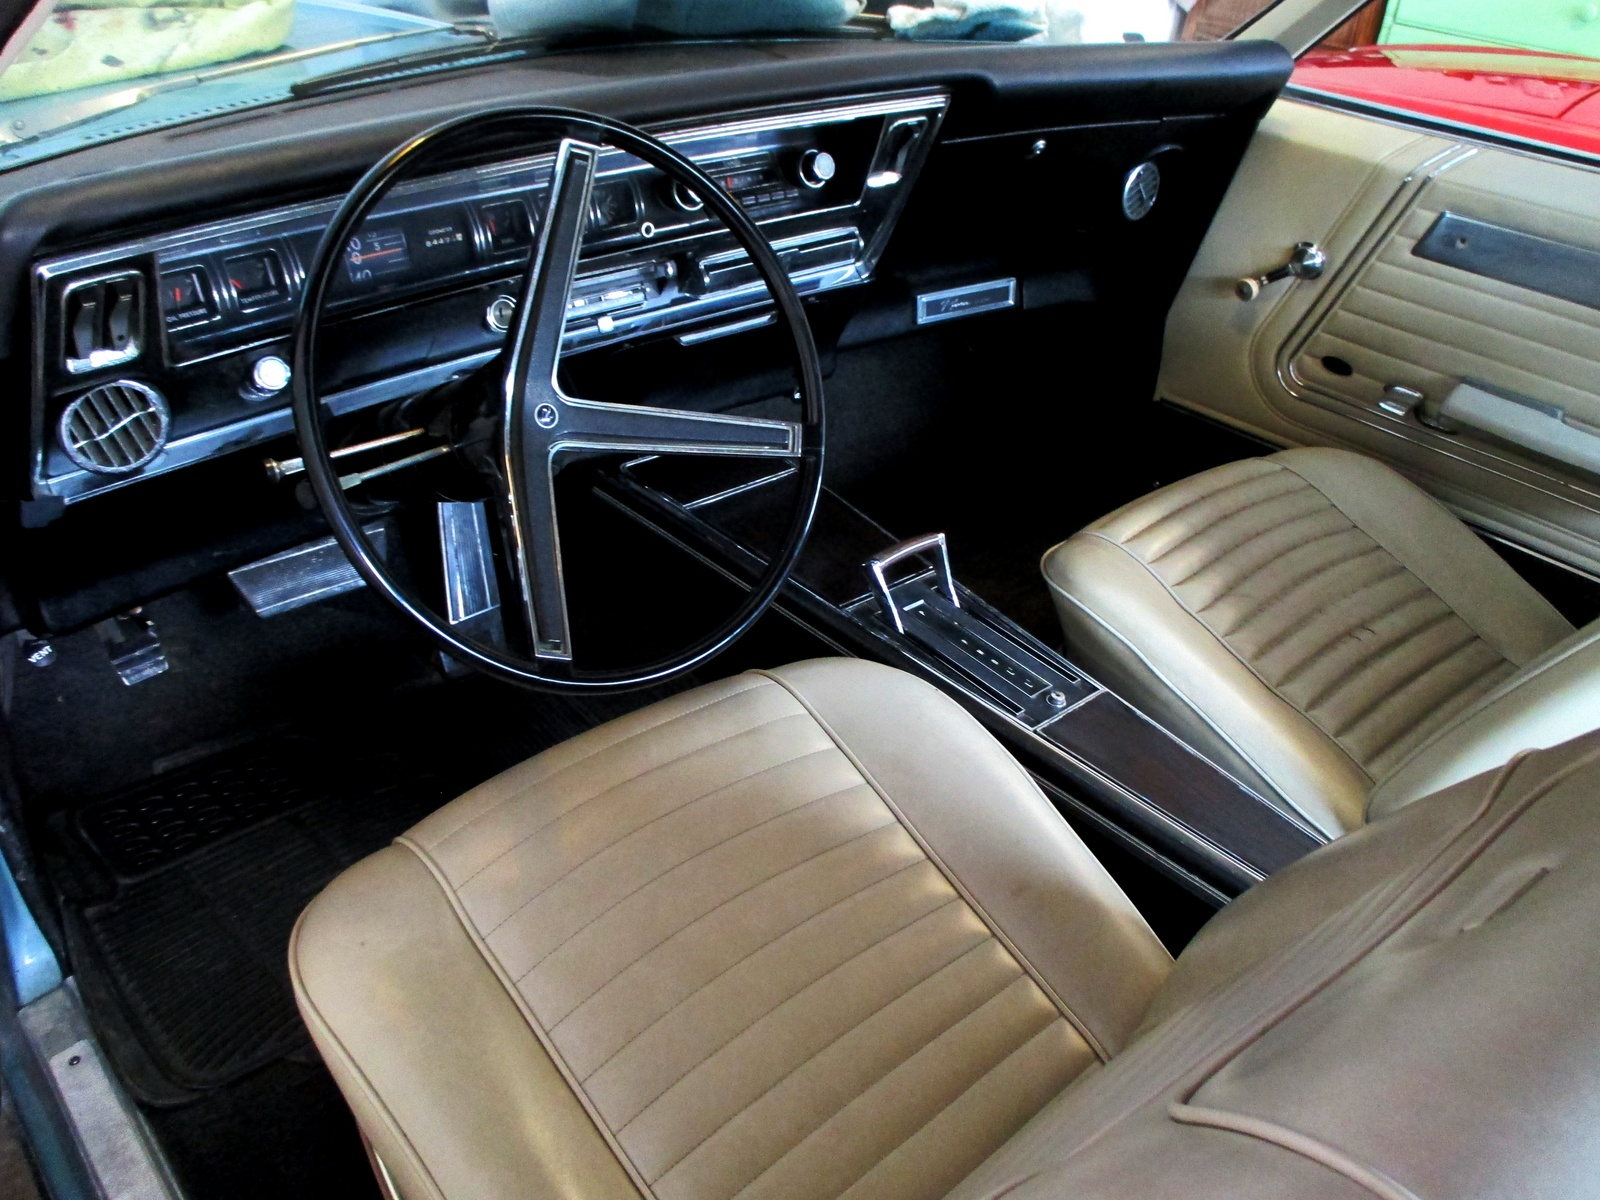 Buick Super Eight Convertible American Cars For Sale X X additionally Buick Riviera Convertible For Sale likewise Buick Riviera Pic besides Buick Series Convertible American Cars For Sale X also Maxresdefault. on 1983 buick lesabre